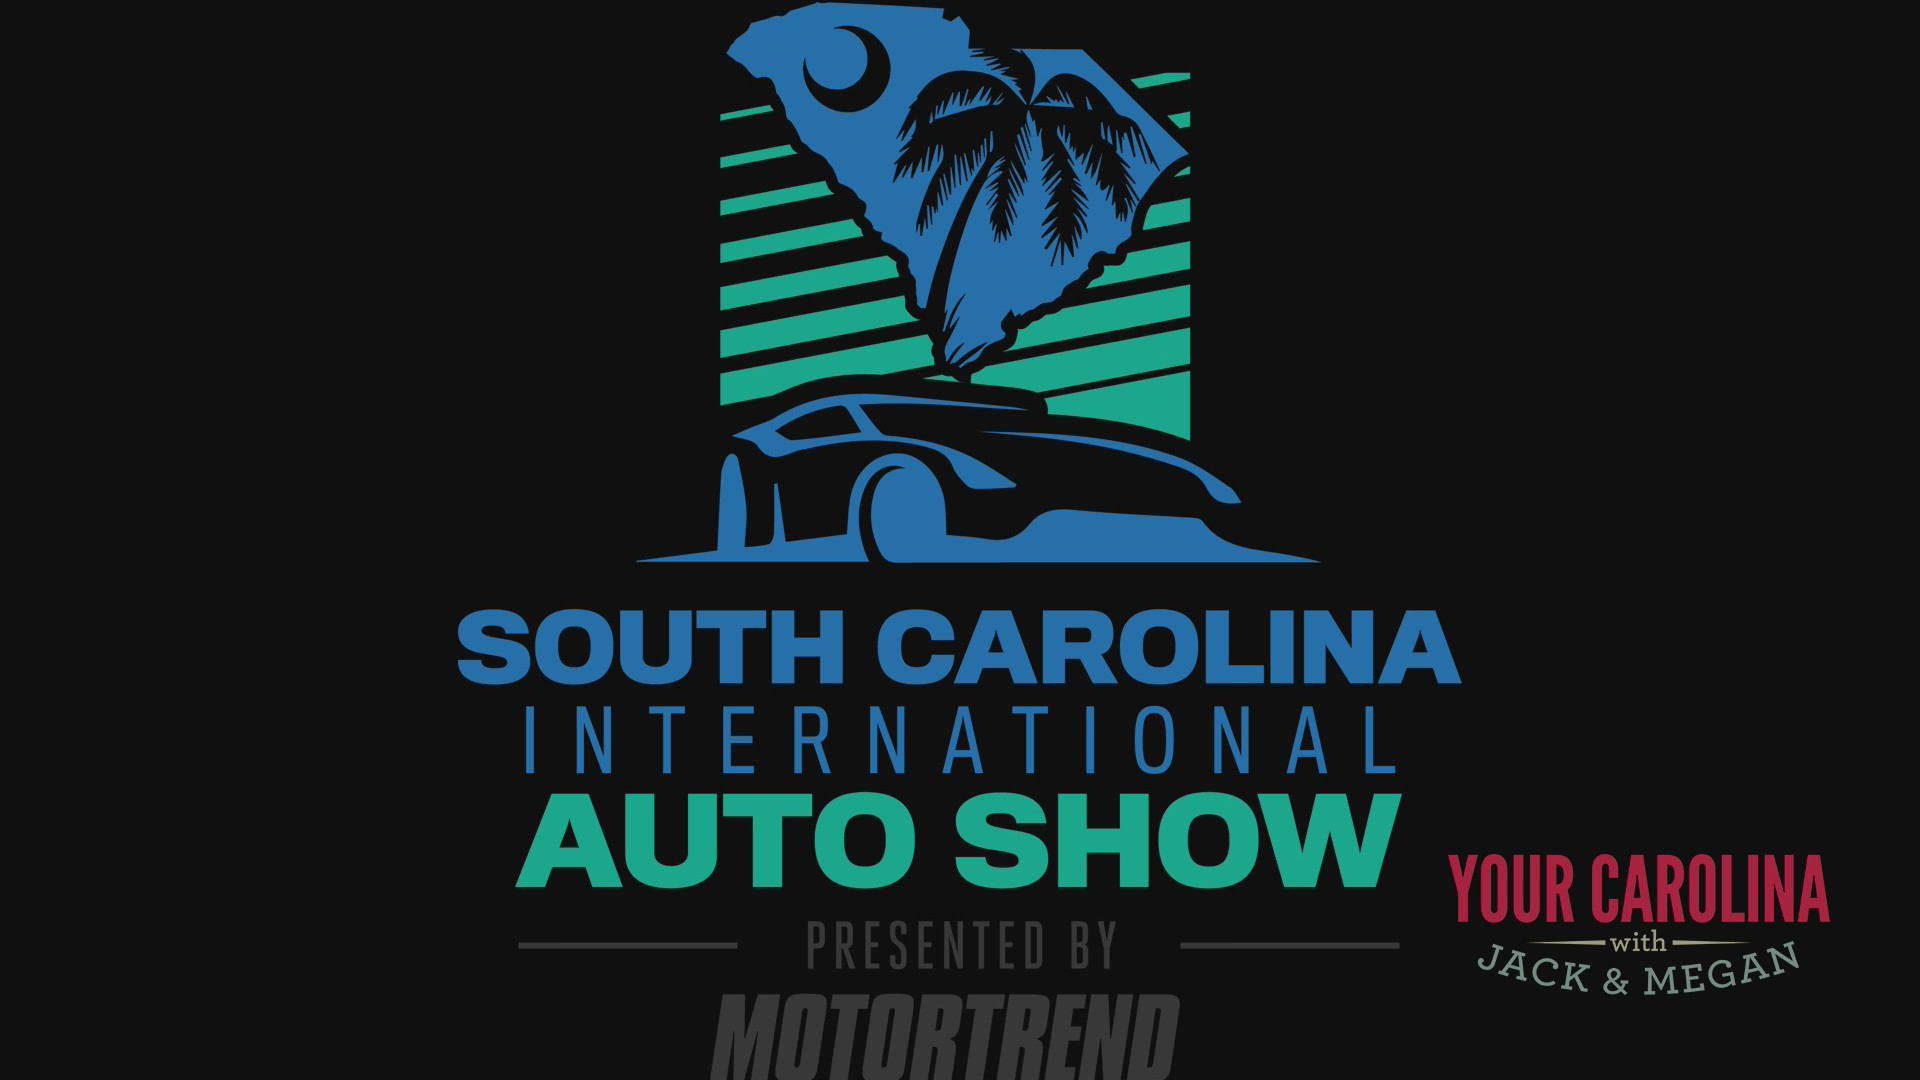 South Carolina International Auto Show Going On This Weekend